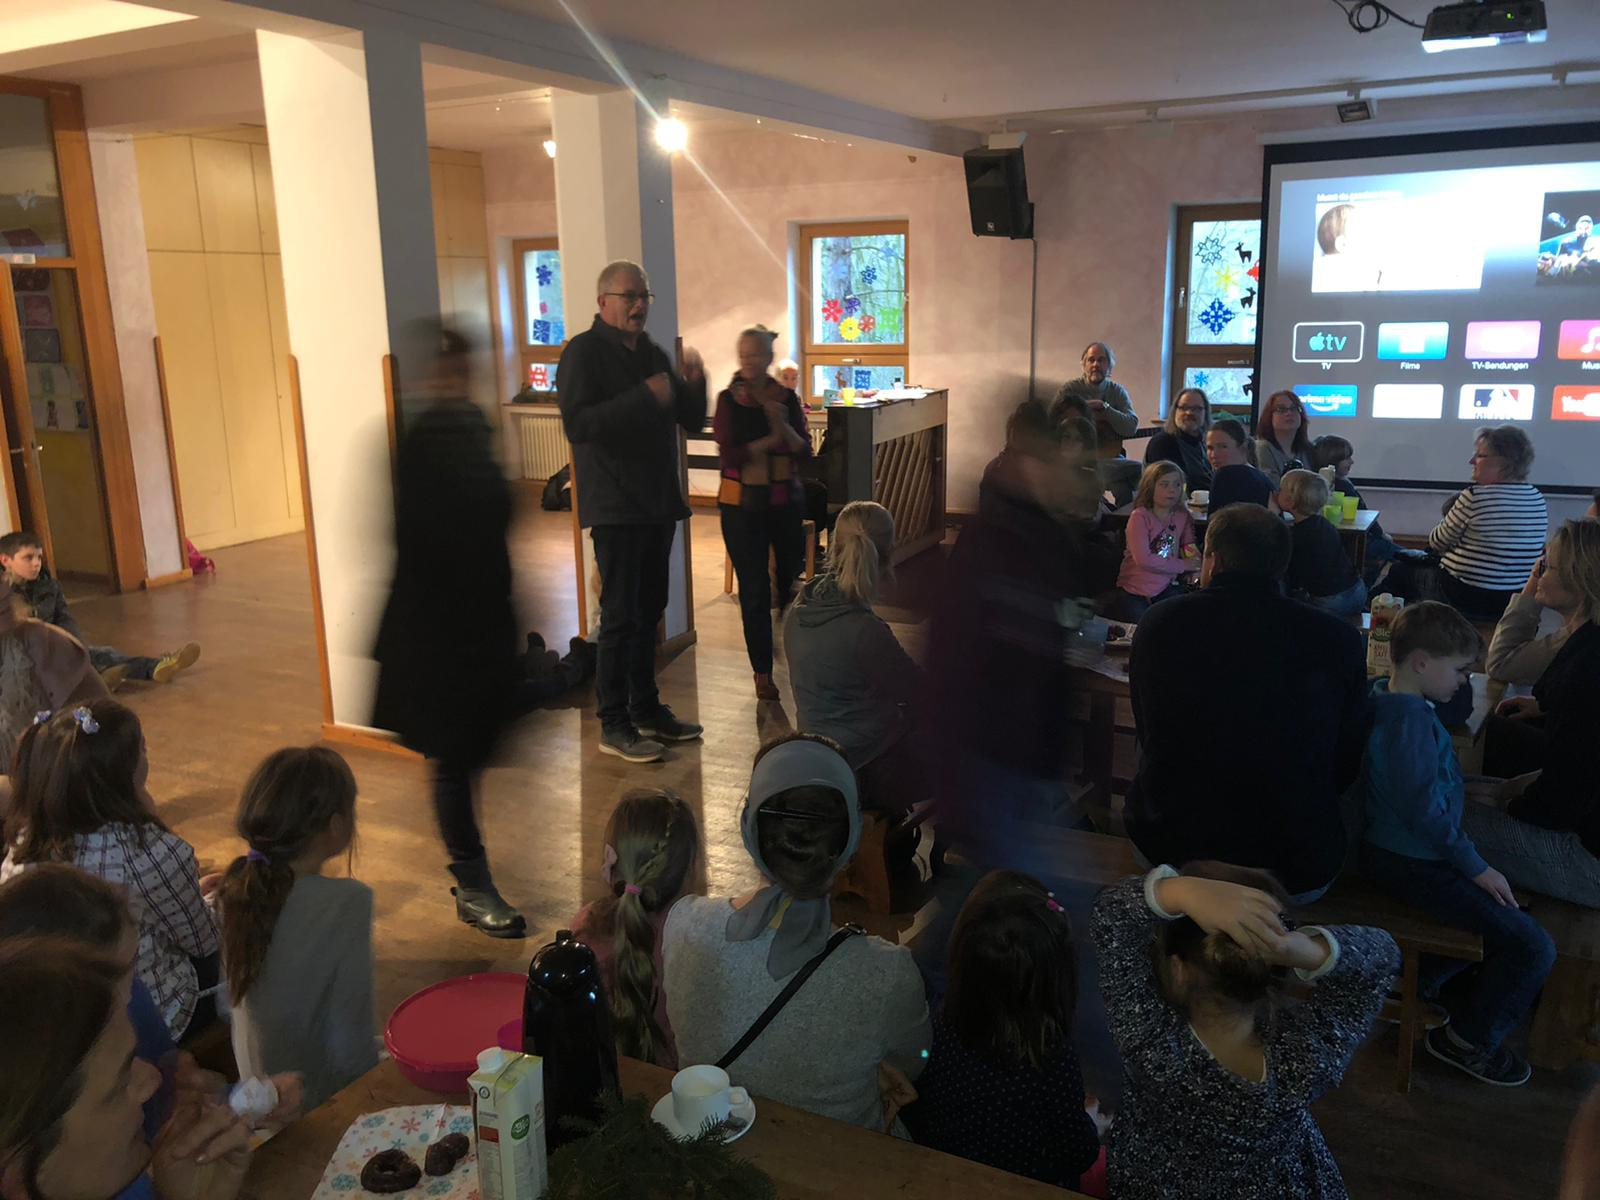 2019-12-04-Adventssingen-04